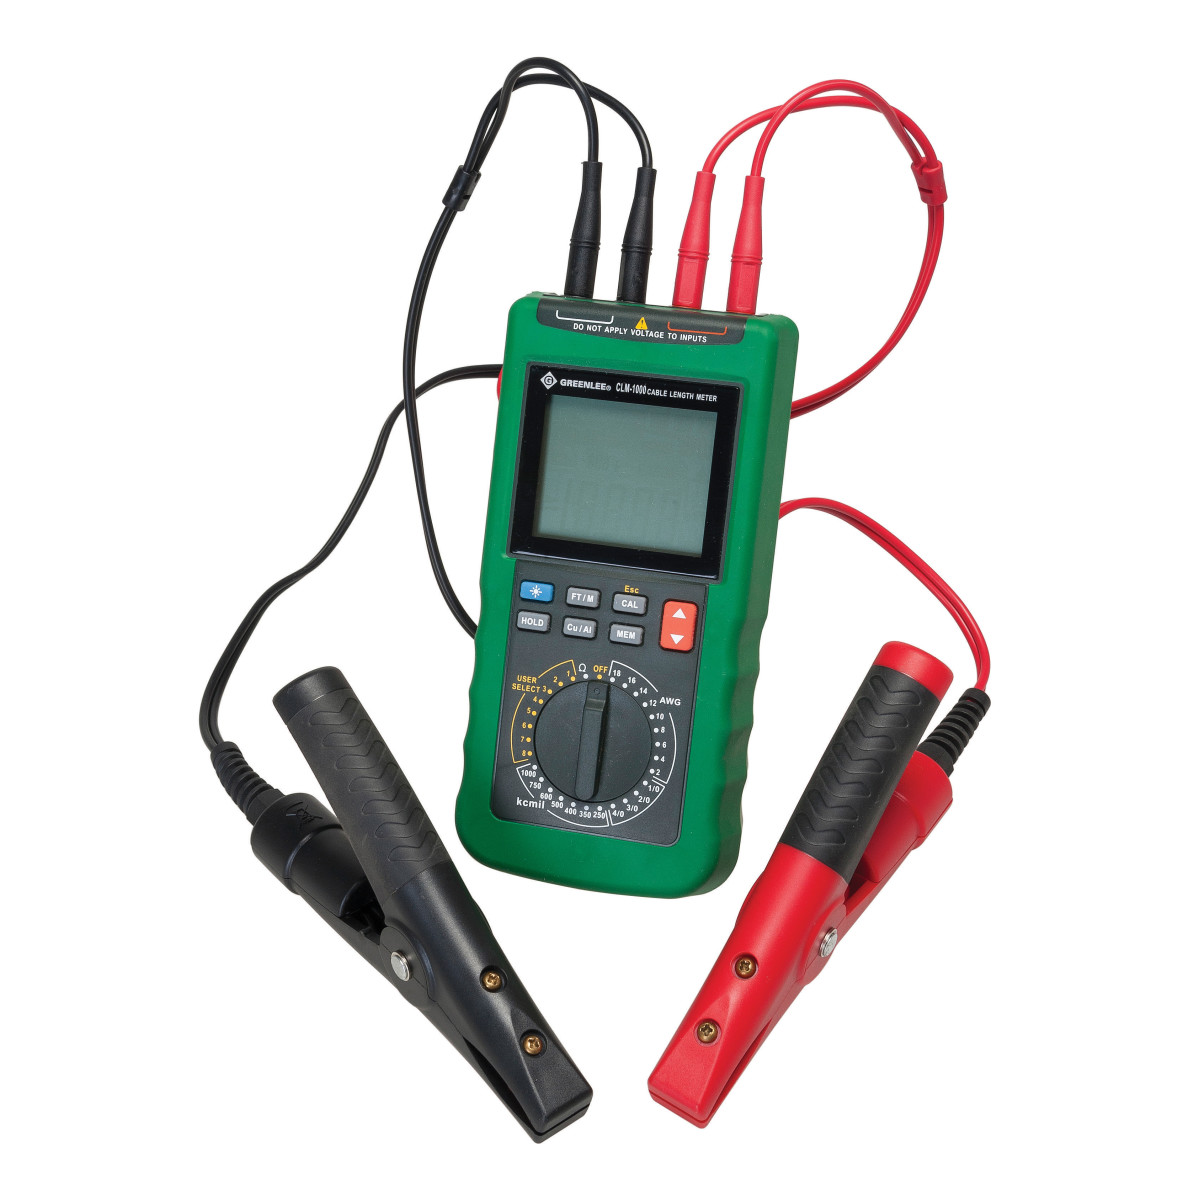 Greenlee CLM-1000 Cable Length Meter for AWG/KCMIL Wire and Cable